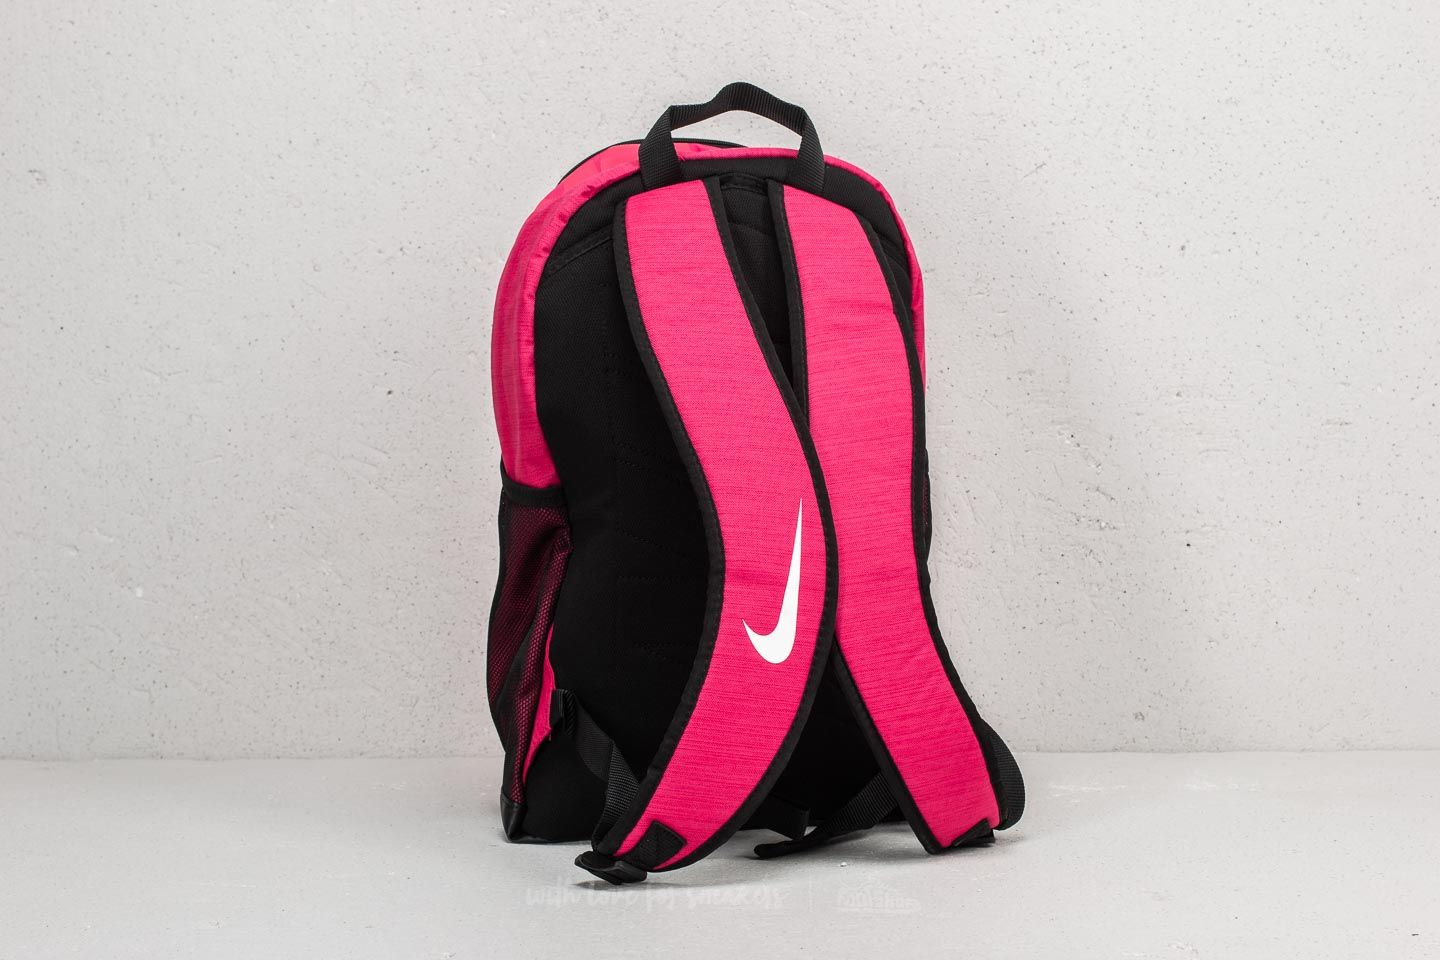 7547d62751a8 Nike Brasilia M Backpack Pink  Black  White at a great price  41 buy at